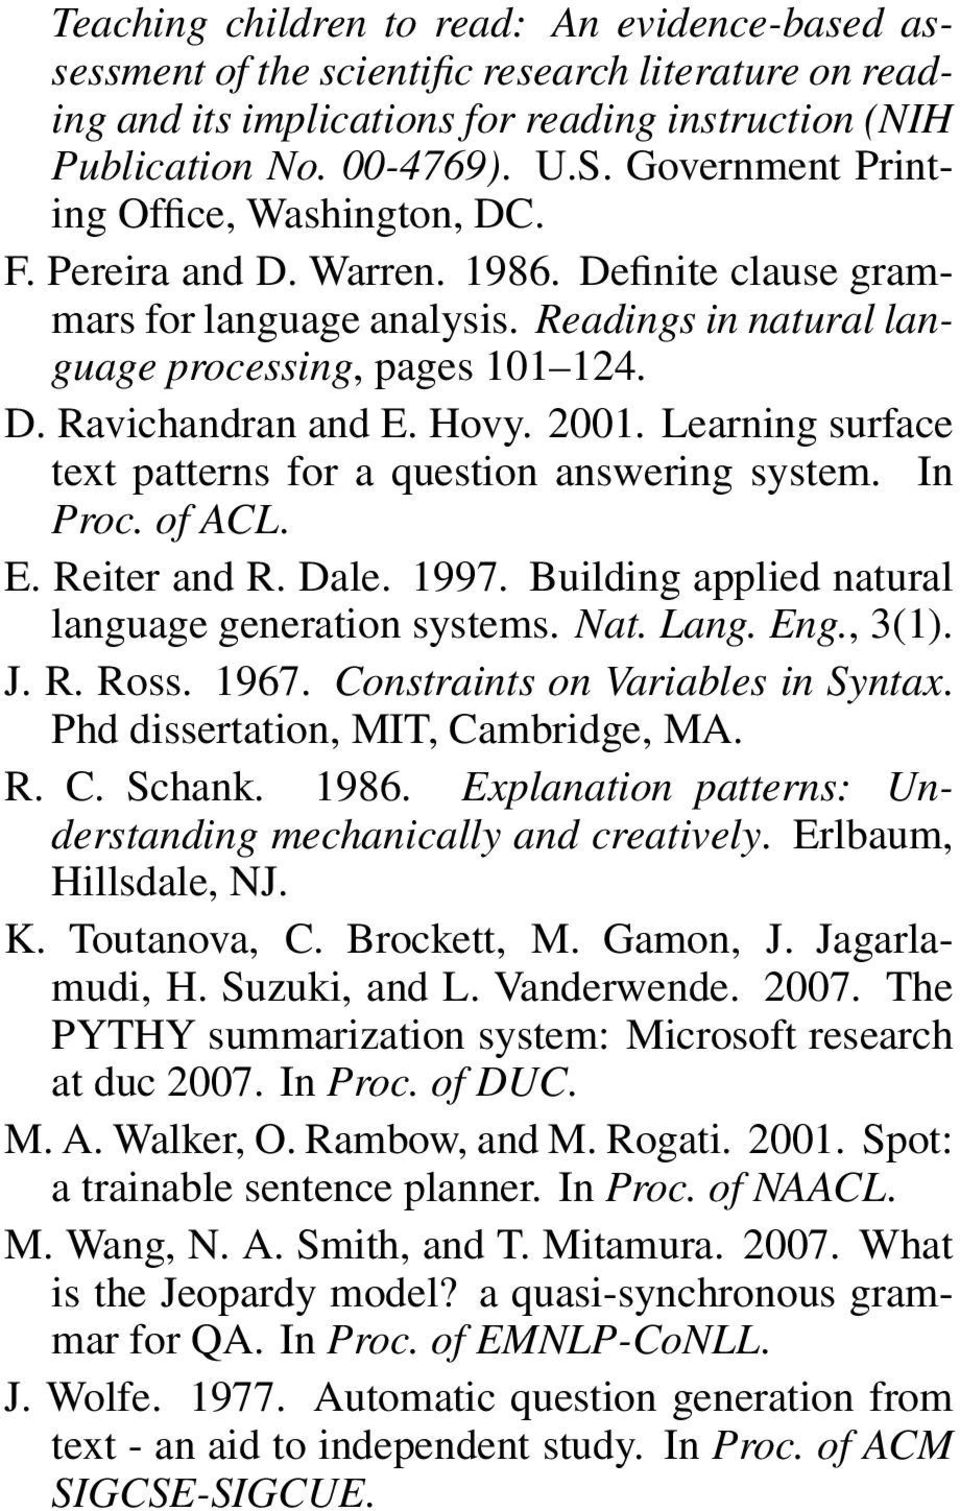 Hovy. 2001. Learning surface text patterns for a question answering system. In Proc. of ACL. E. Reiter and R. Dale. 1997. Building applied natural language generation systems. Nat. Lang. Eng., 3(1).